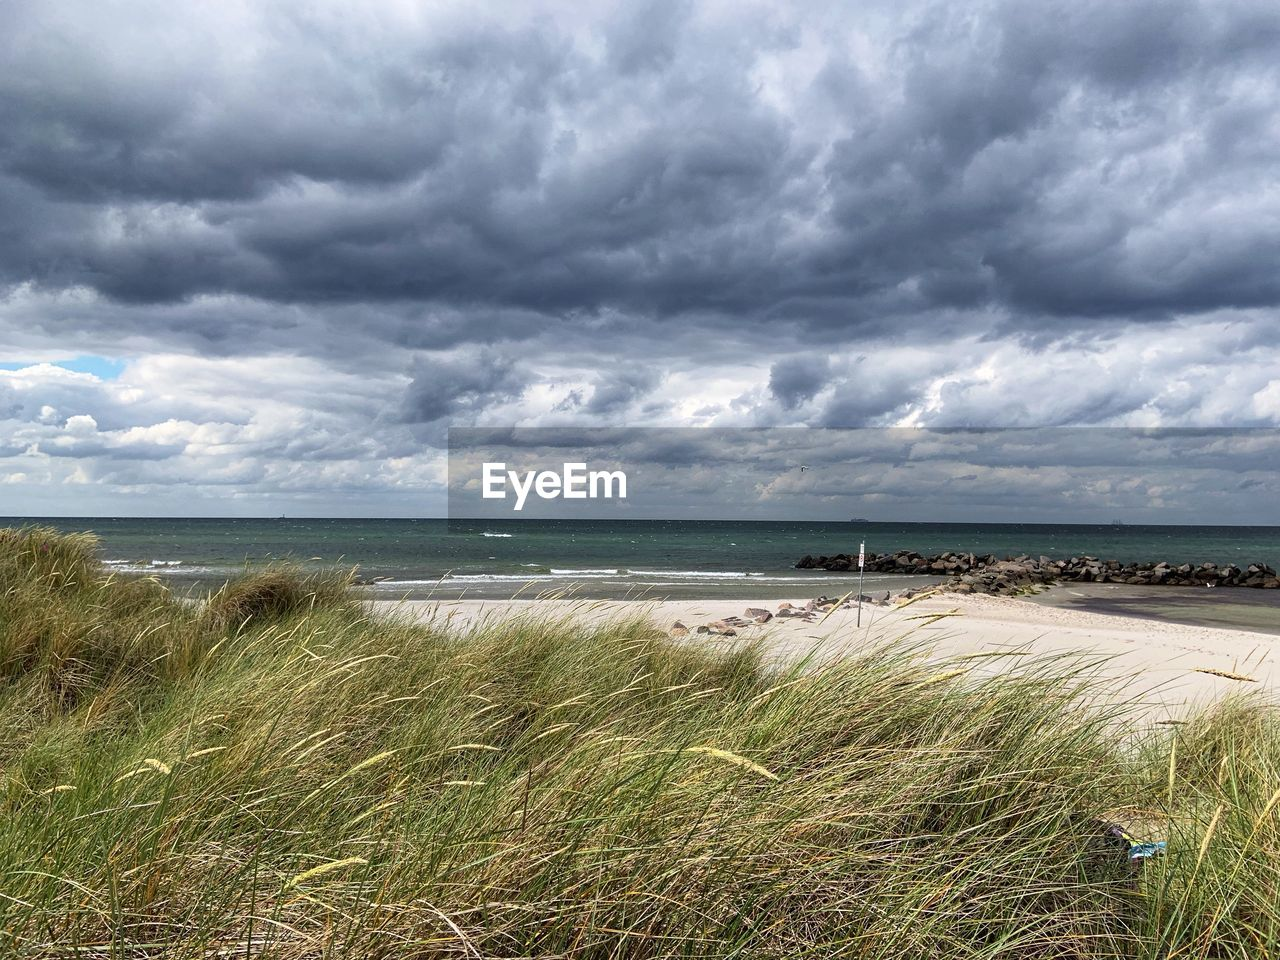 cloud - sky, sky, water, sea, plant, beauty in nature, land, grass, scenics - nature, beach, horizon over water, horizon, nature, tranquility, tranquil scene, day, growth, marram grass, no people, timothy grass